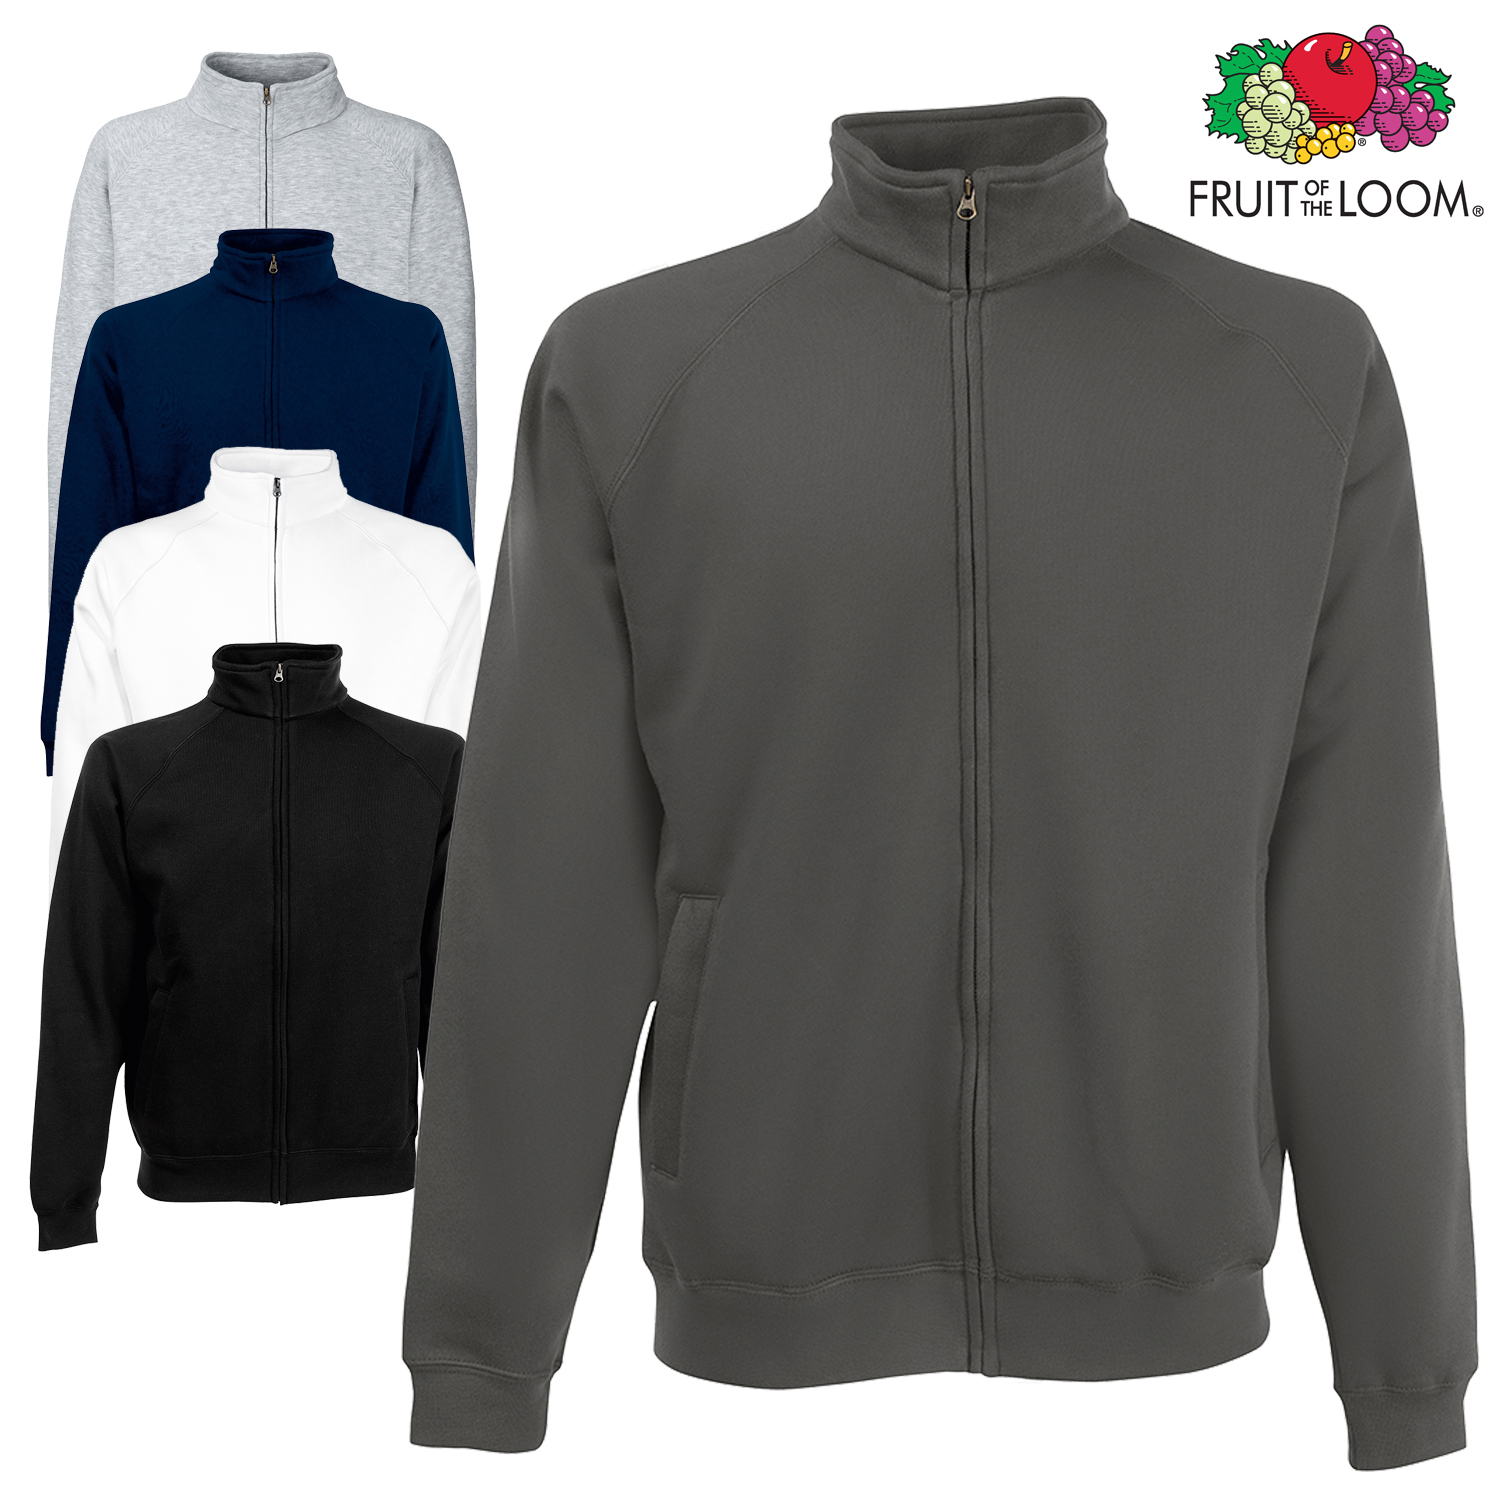 Fruit of the Loom Sudadera para Hombre